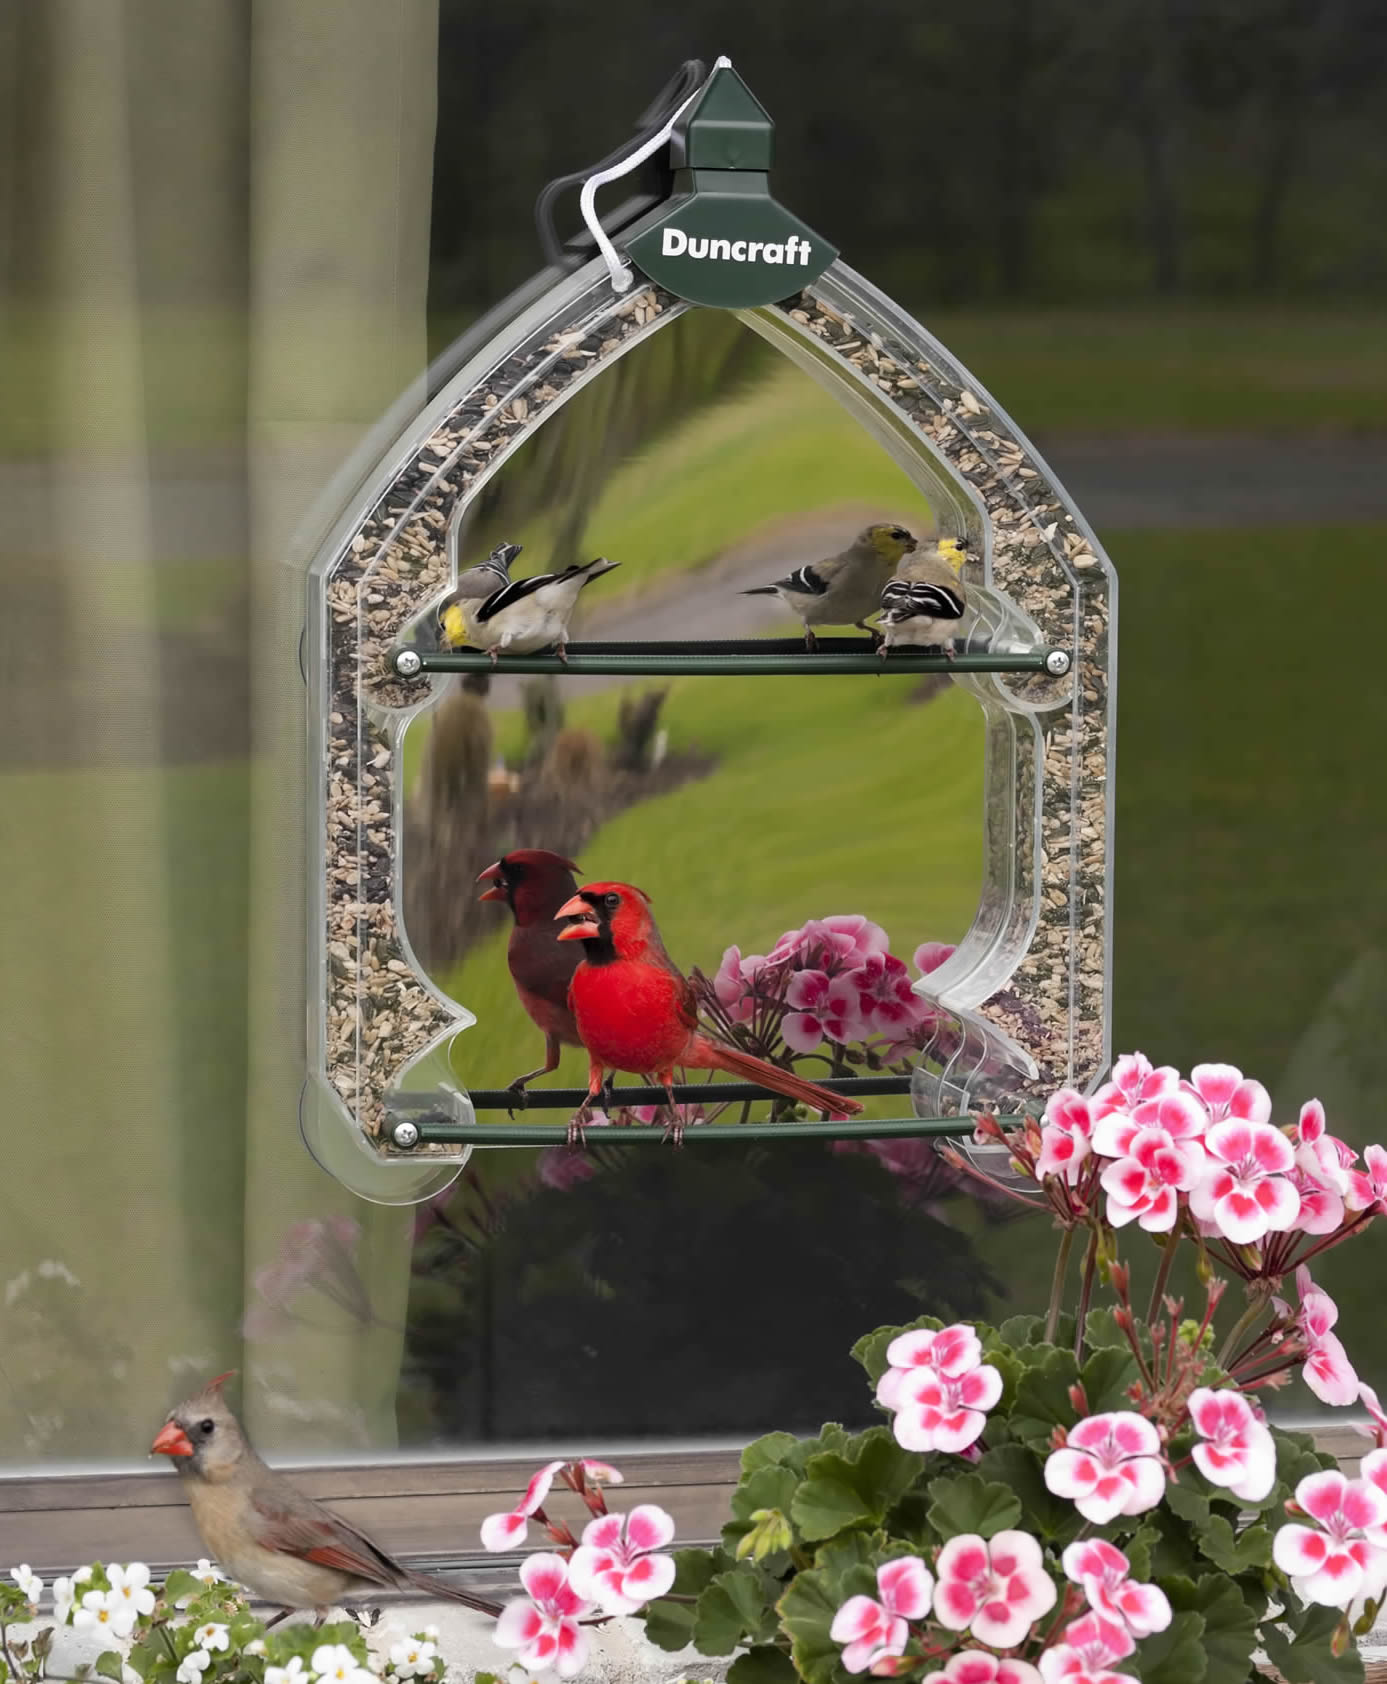 Duncraft Magic Mirrored Window Feeder